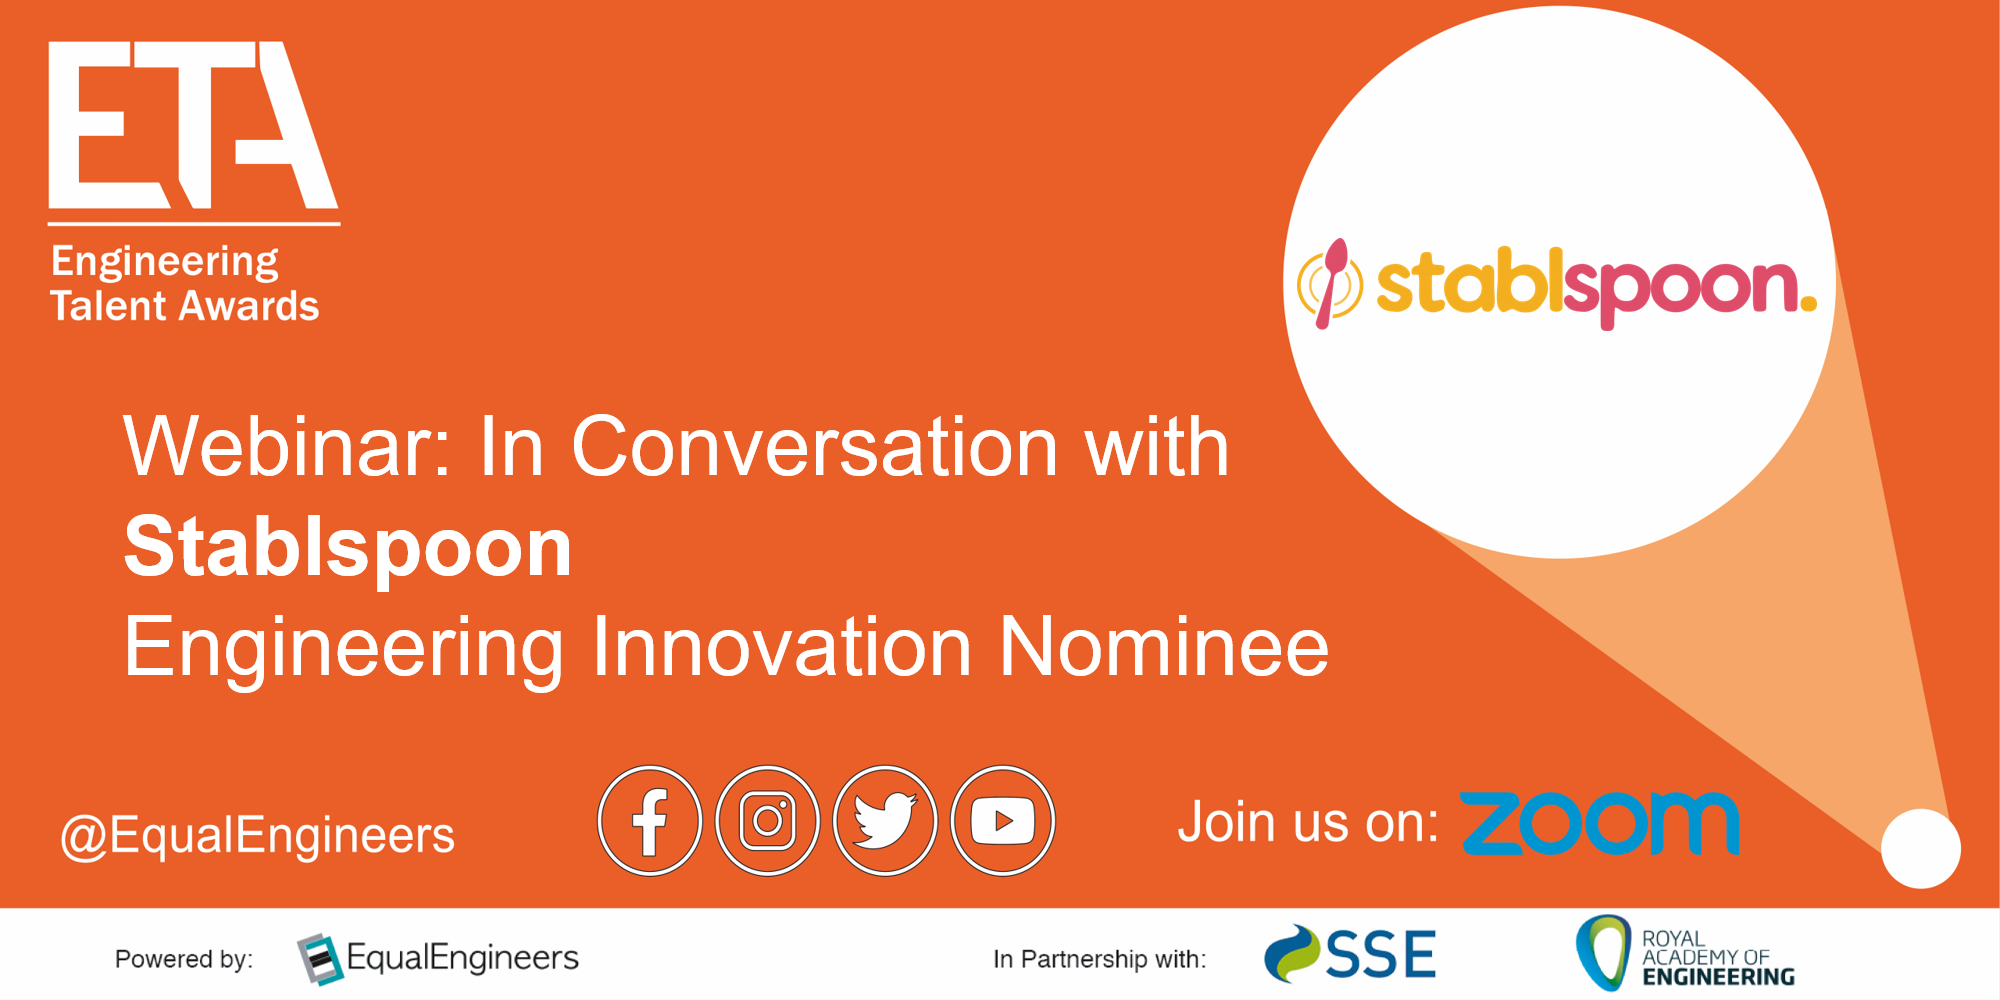 engineering-innovation-nominee-stablspoon